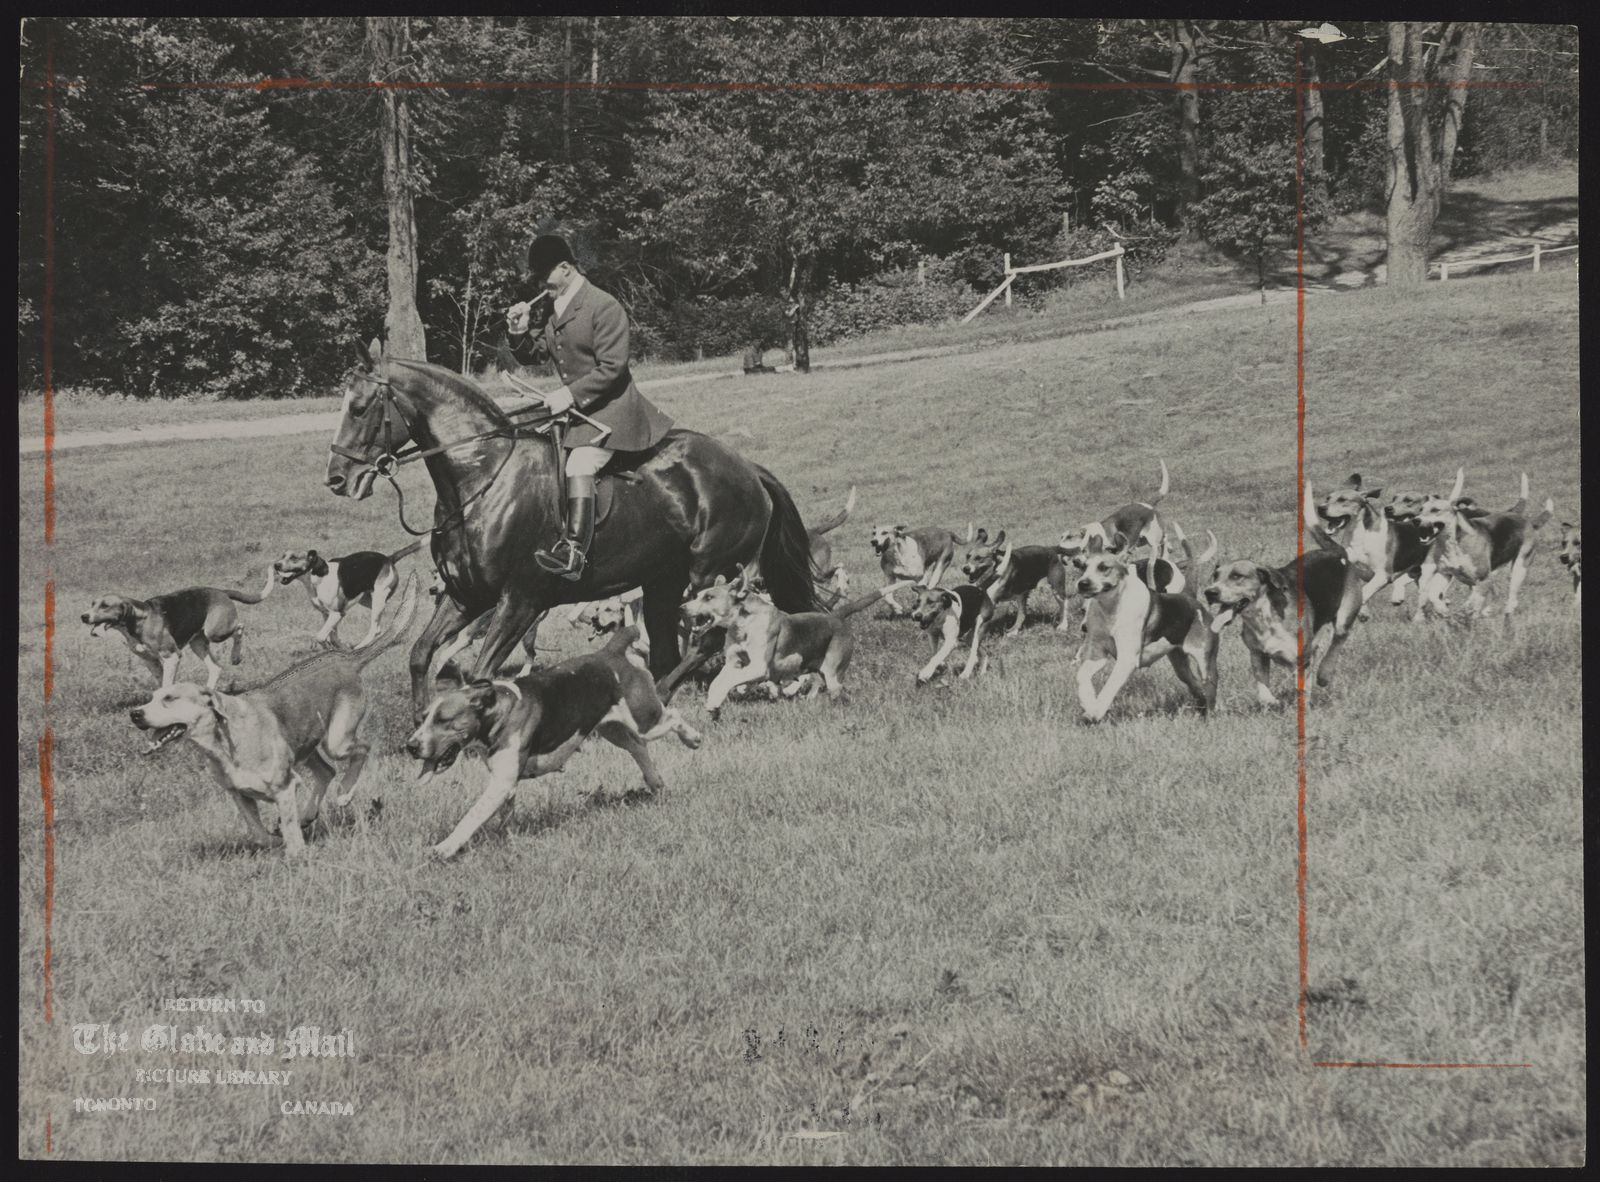 TORONTO AND NORTH YORK HUNT CLUB Master of Hounds Fred Pickford leads pack at Toronto and North York Hunt's race day yesterday.